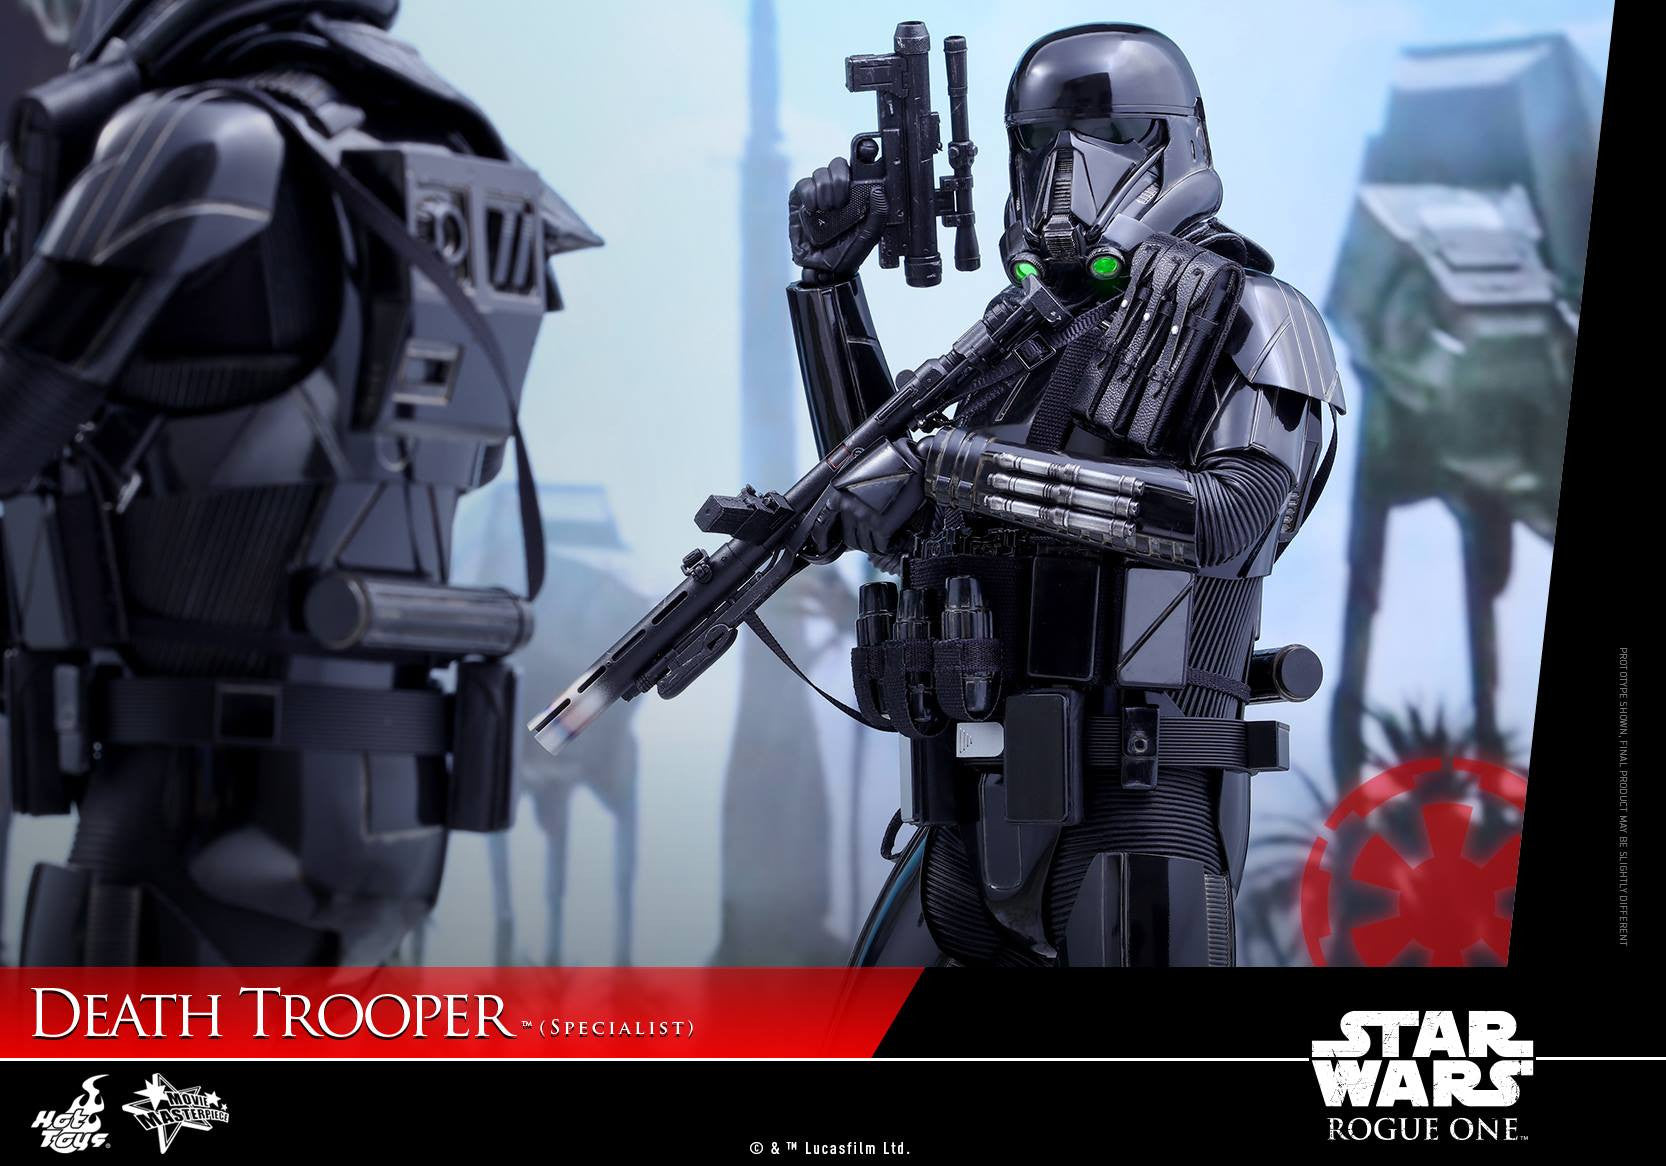 Hot Toys - MMS385 - Rogue One: A Star Wars Story - Death Trooper (Specialist) - Marvelous Toys - 14